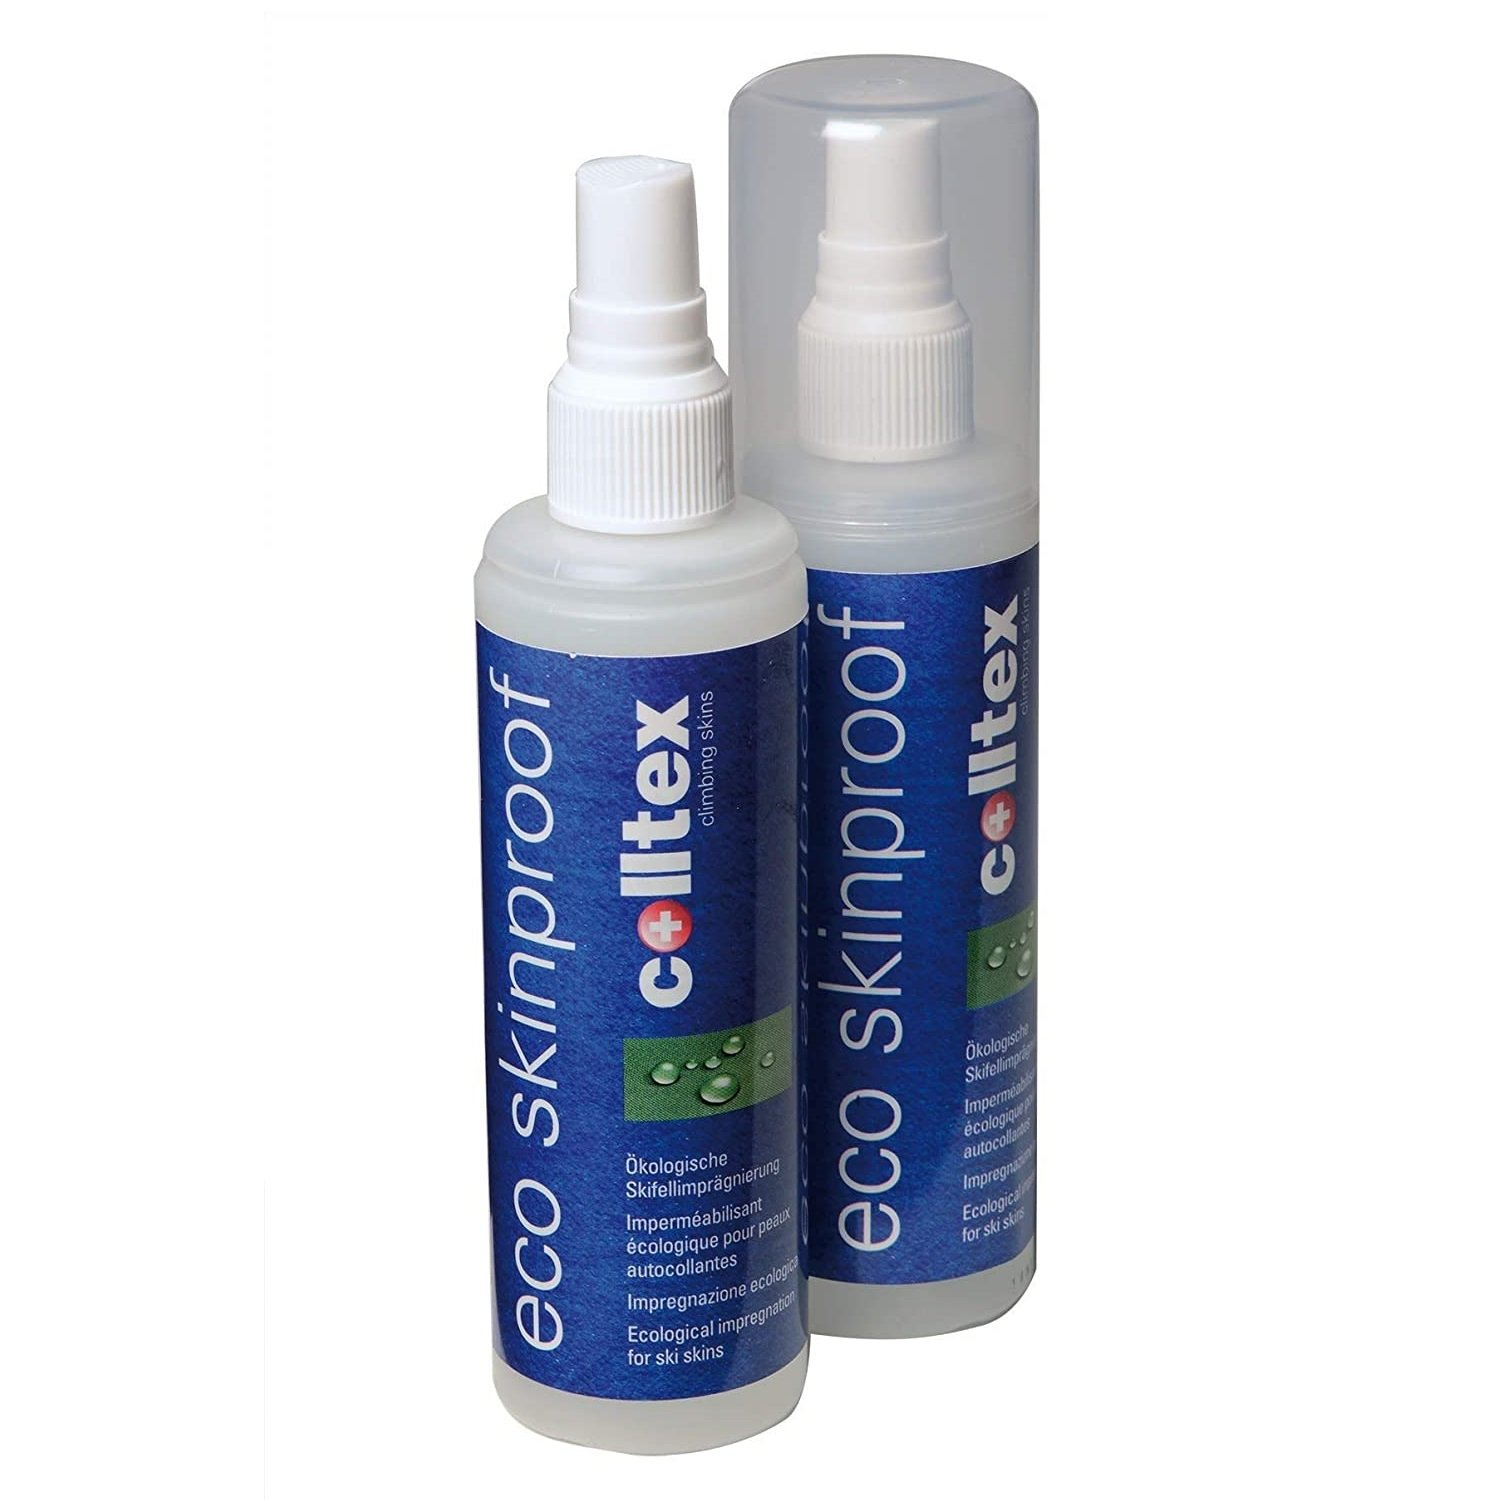 colltex-eco-skinproof-spray-impregnatation-peaux-a-phoque